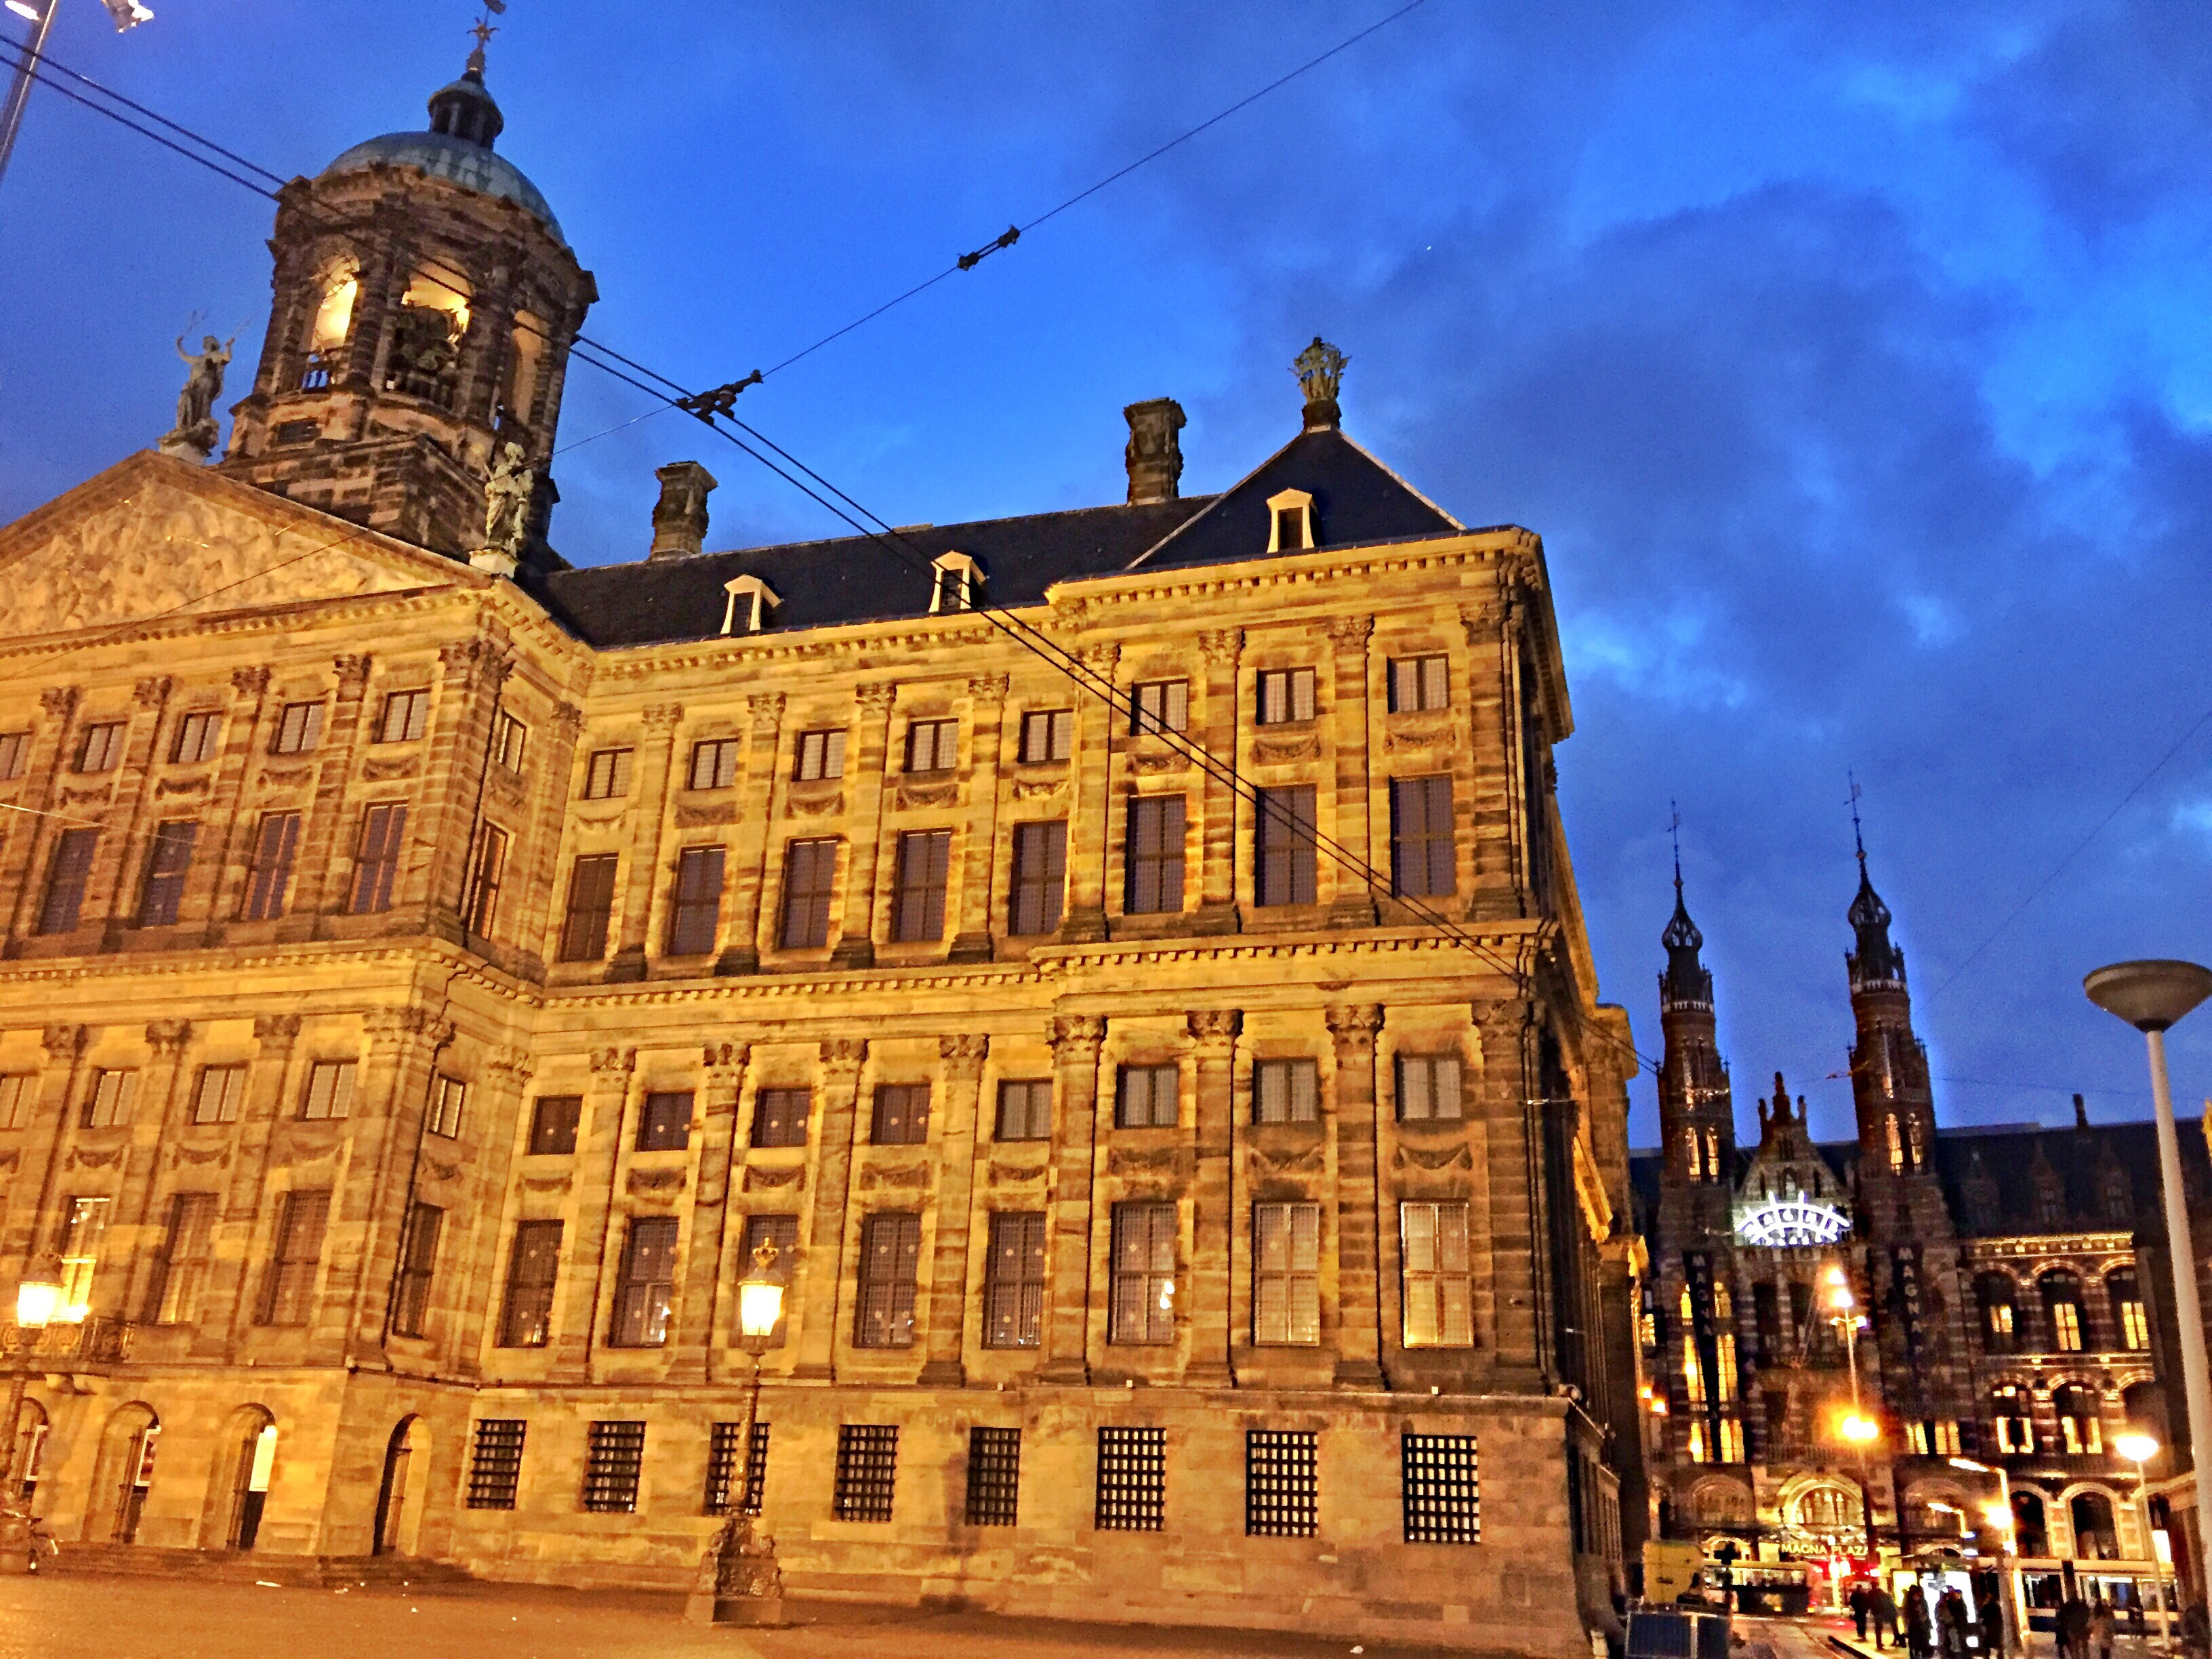 Dam Square - The Dutch Royal Palace